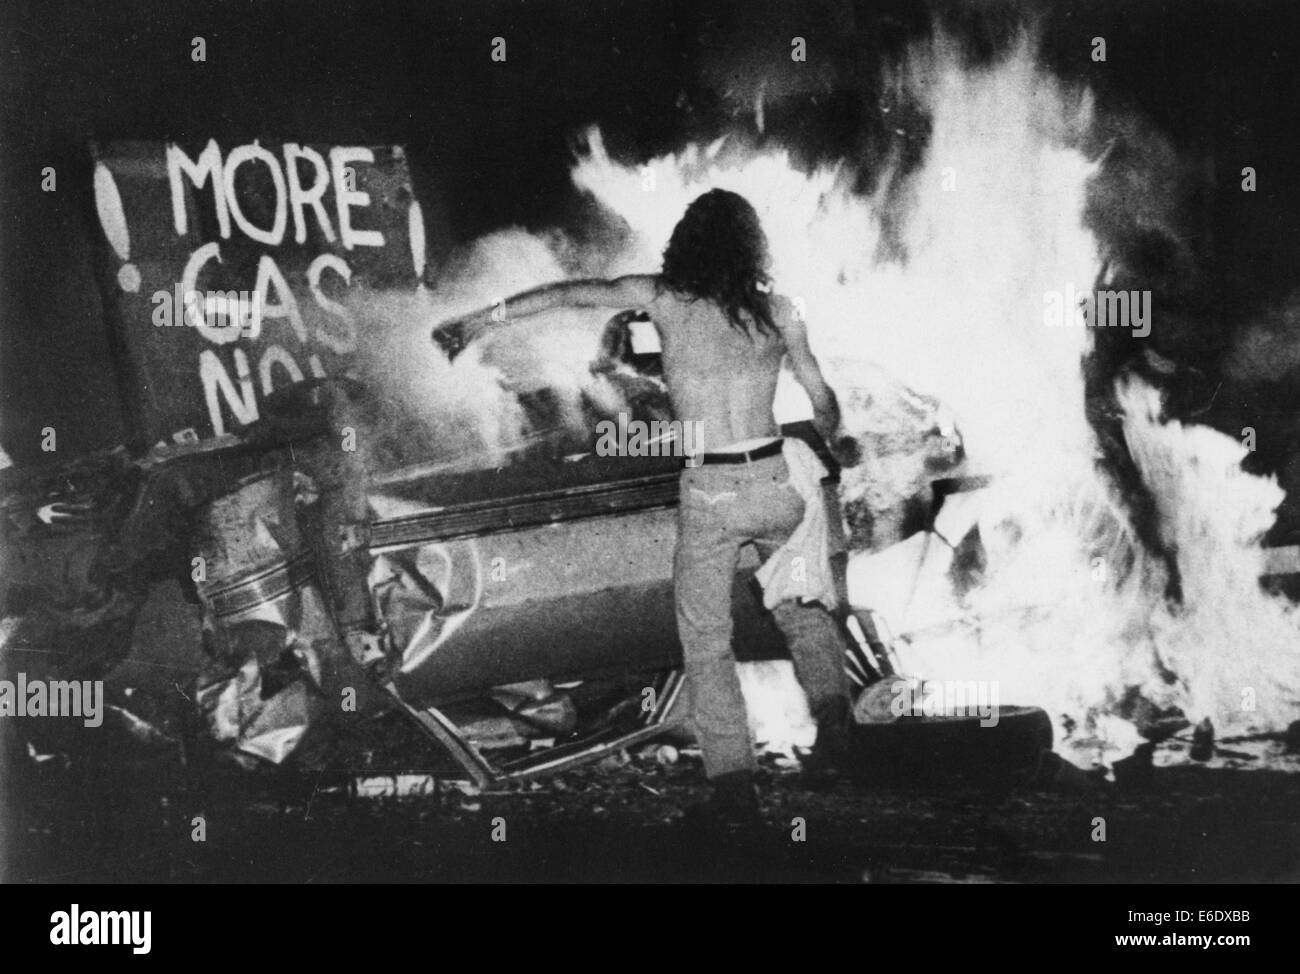 Gas Shortage Demonstrator in Front of Burning Car During Riot at Night, Levittown, Pennsylvania, USA, 1979 - Stock Image